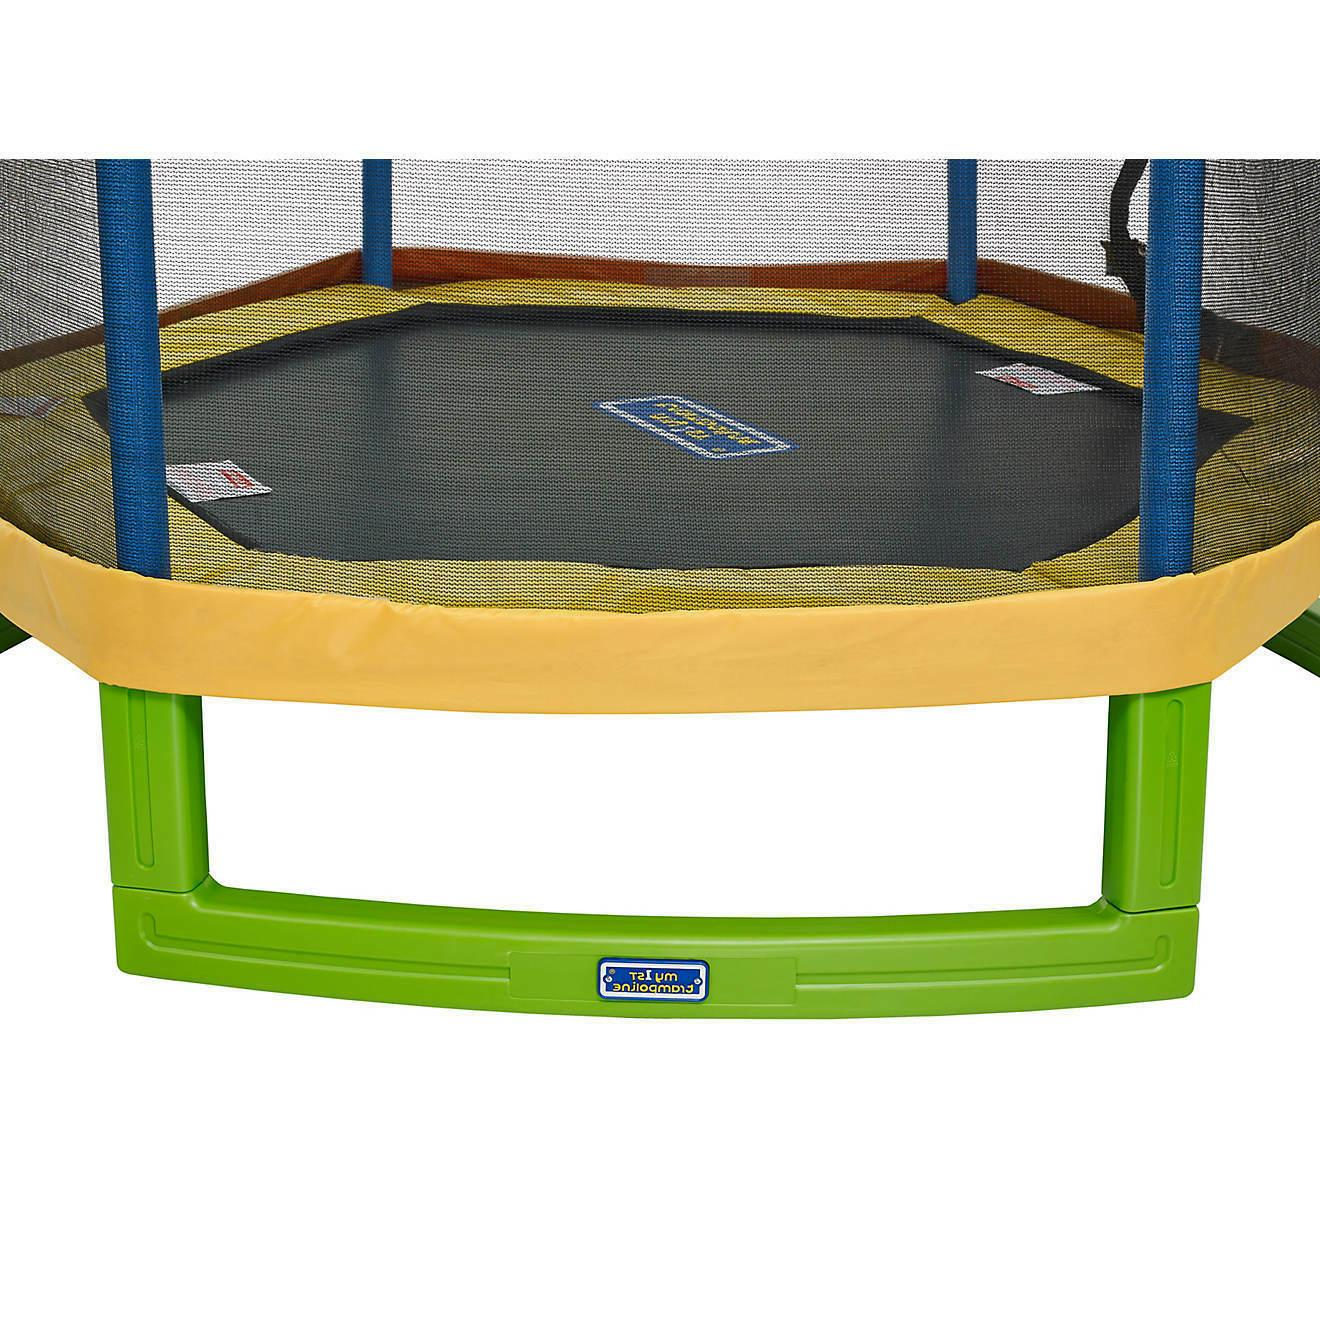 JumpZone First Trampoline Enclosure Net Combo Bounce